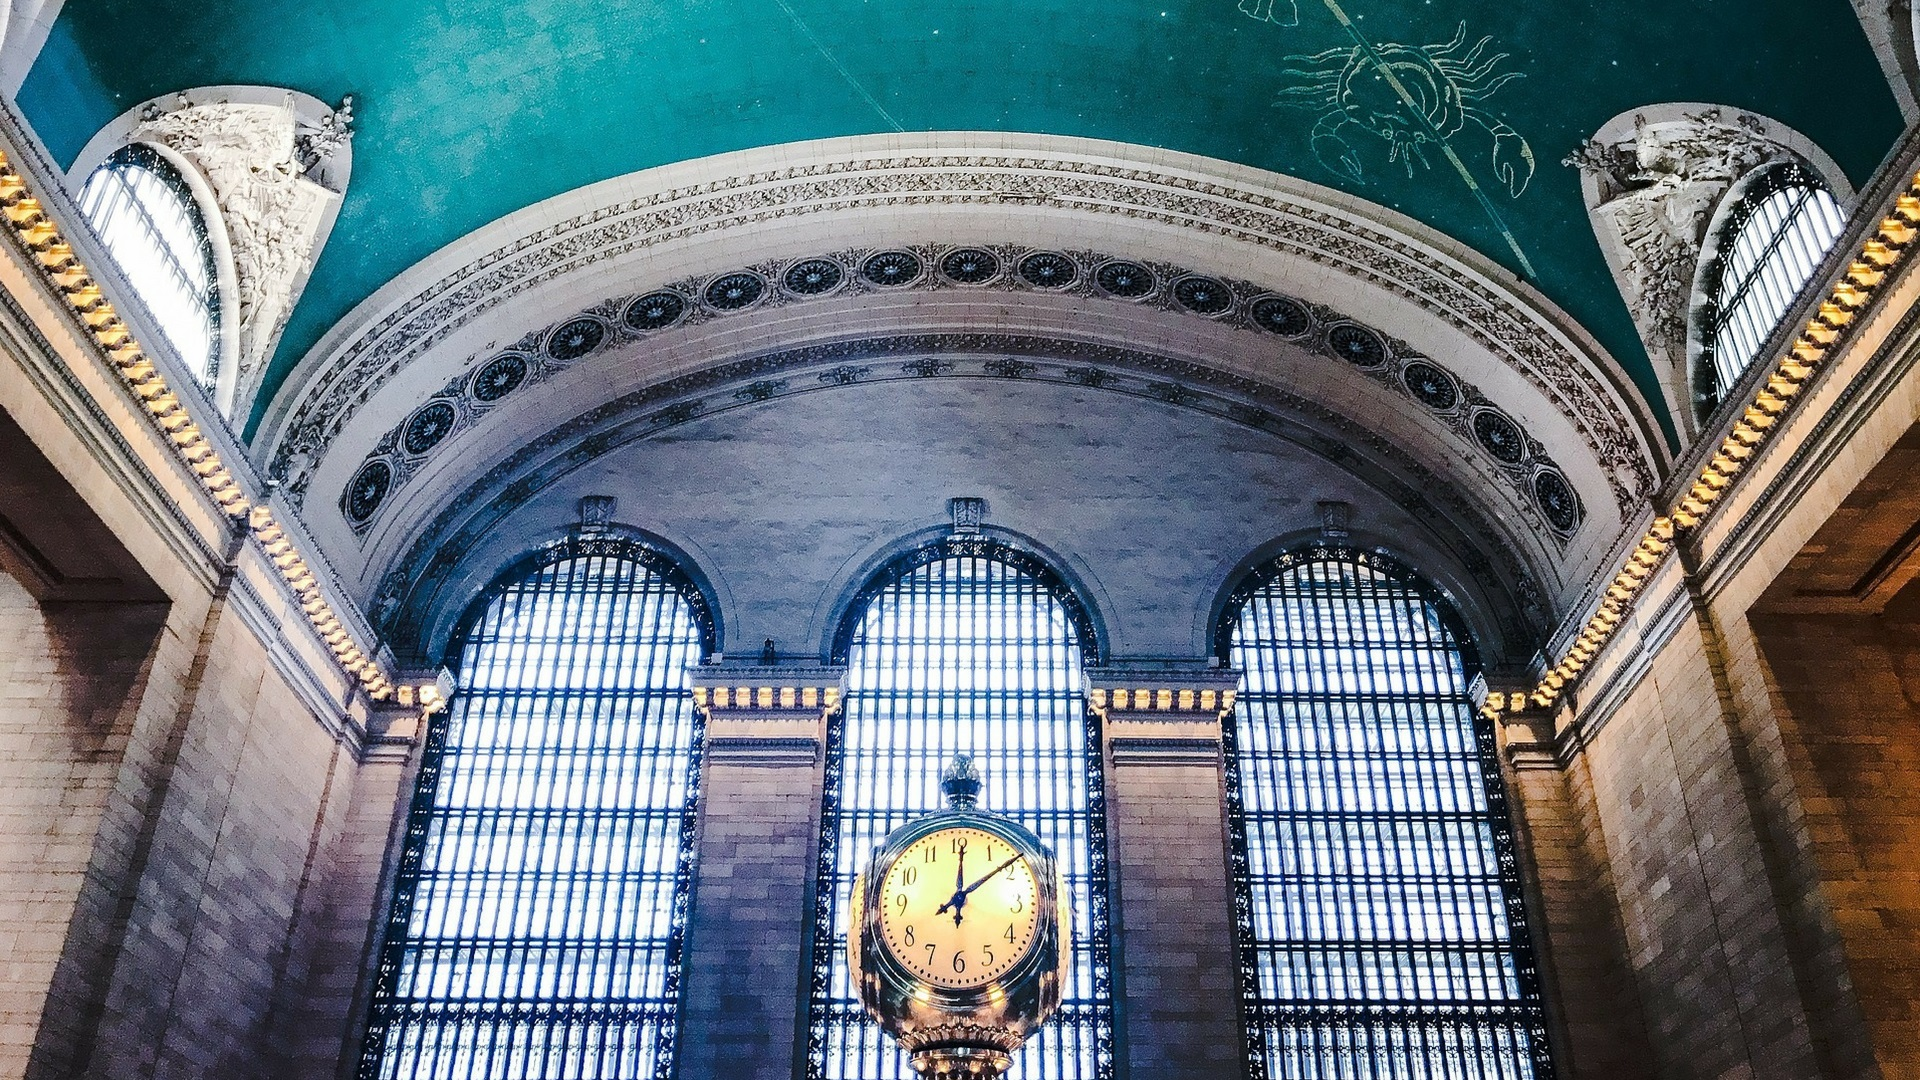 New York Times 36 Hours In Featured Image of Clock